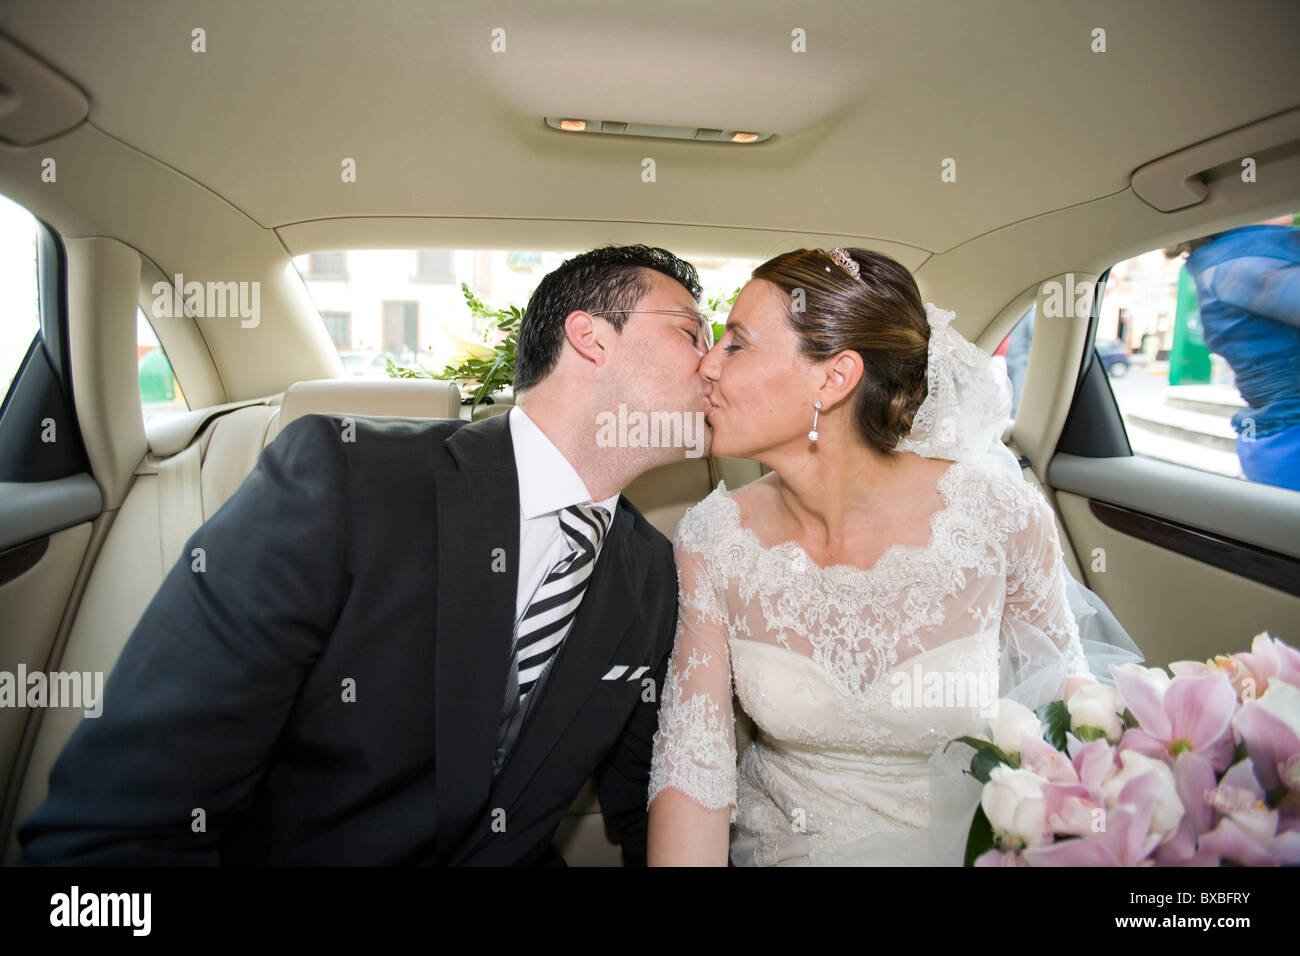 A newly wed couple kissing in a car - Stock Image